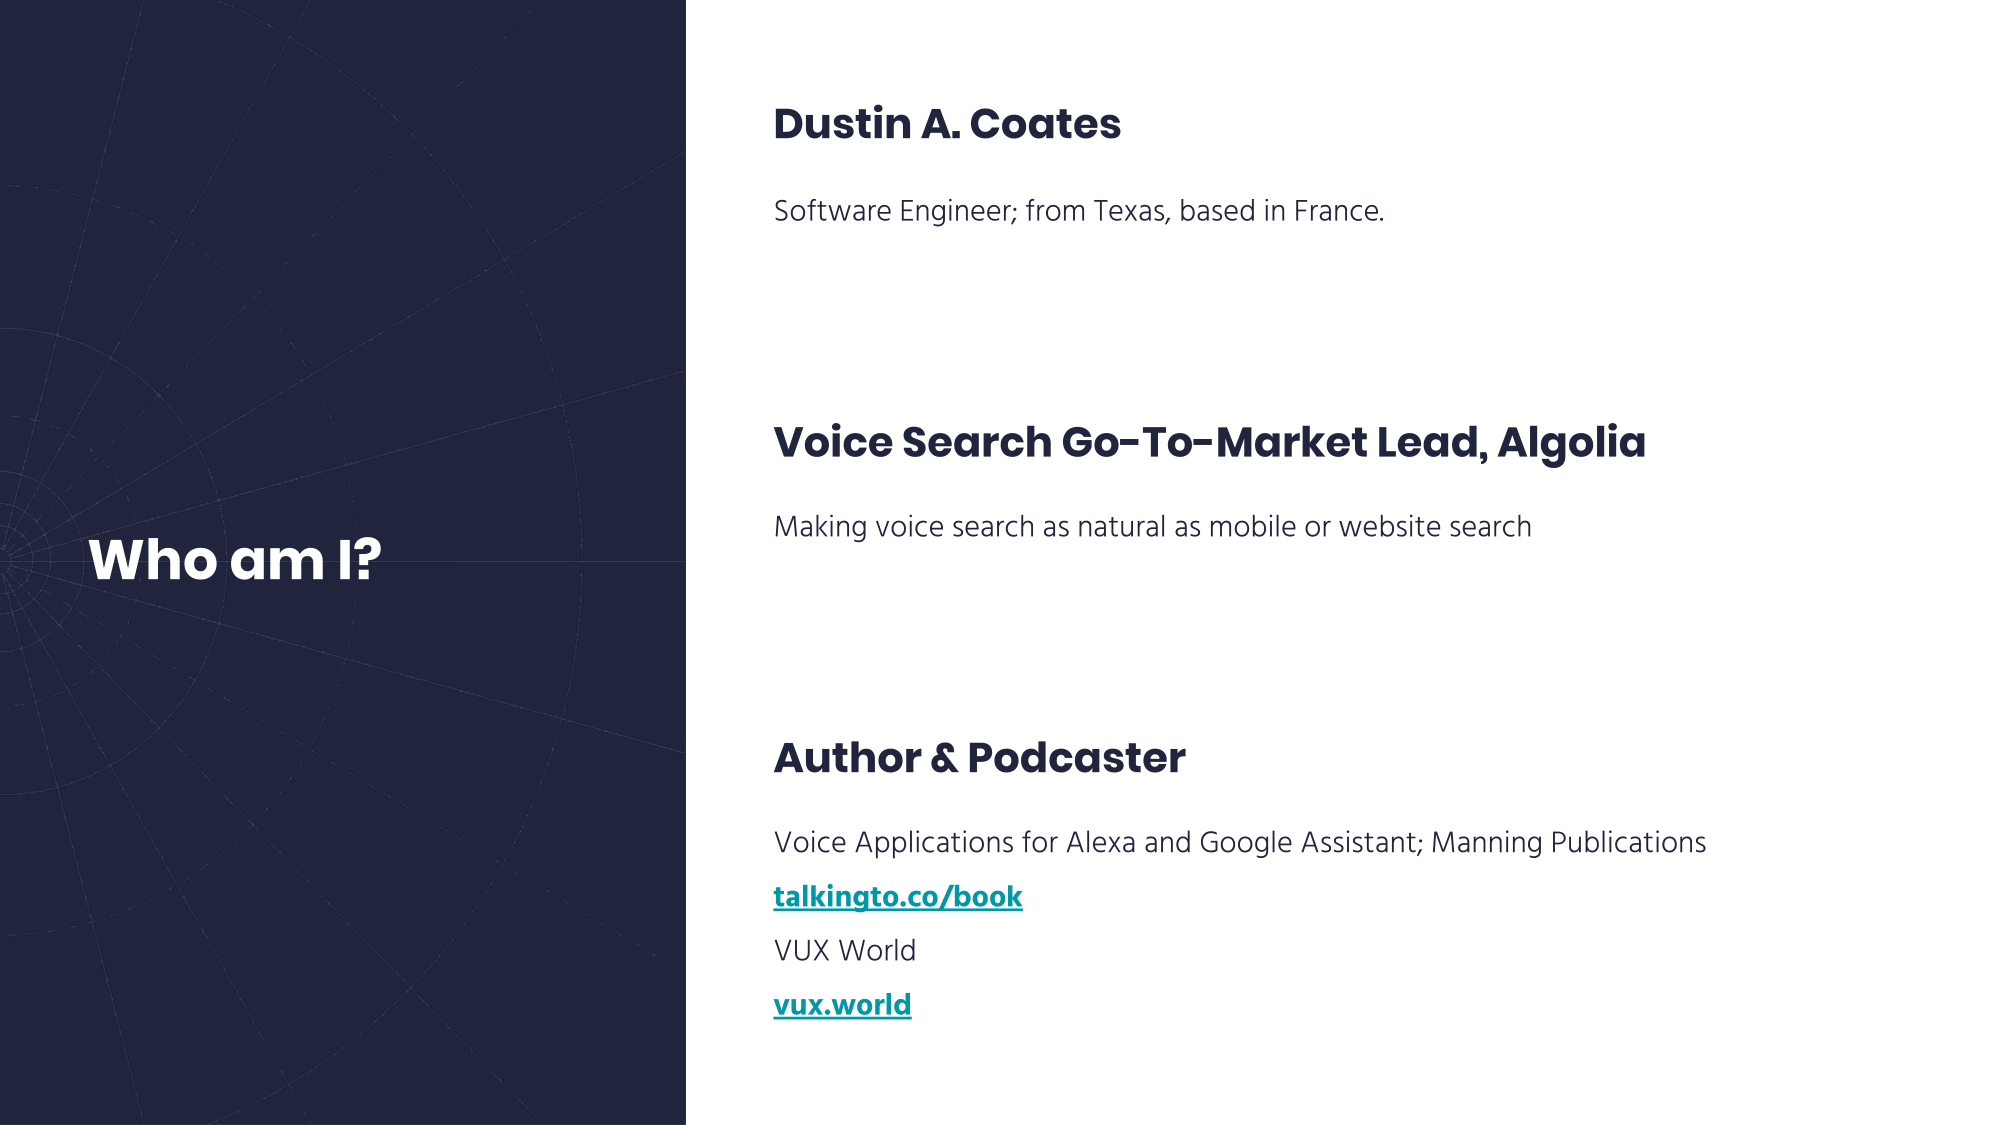 Talking to Computers | Voice Search for Mobile, Voice-First